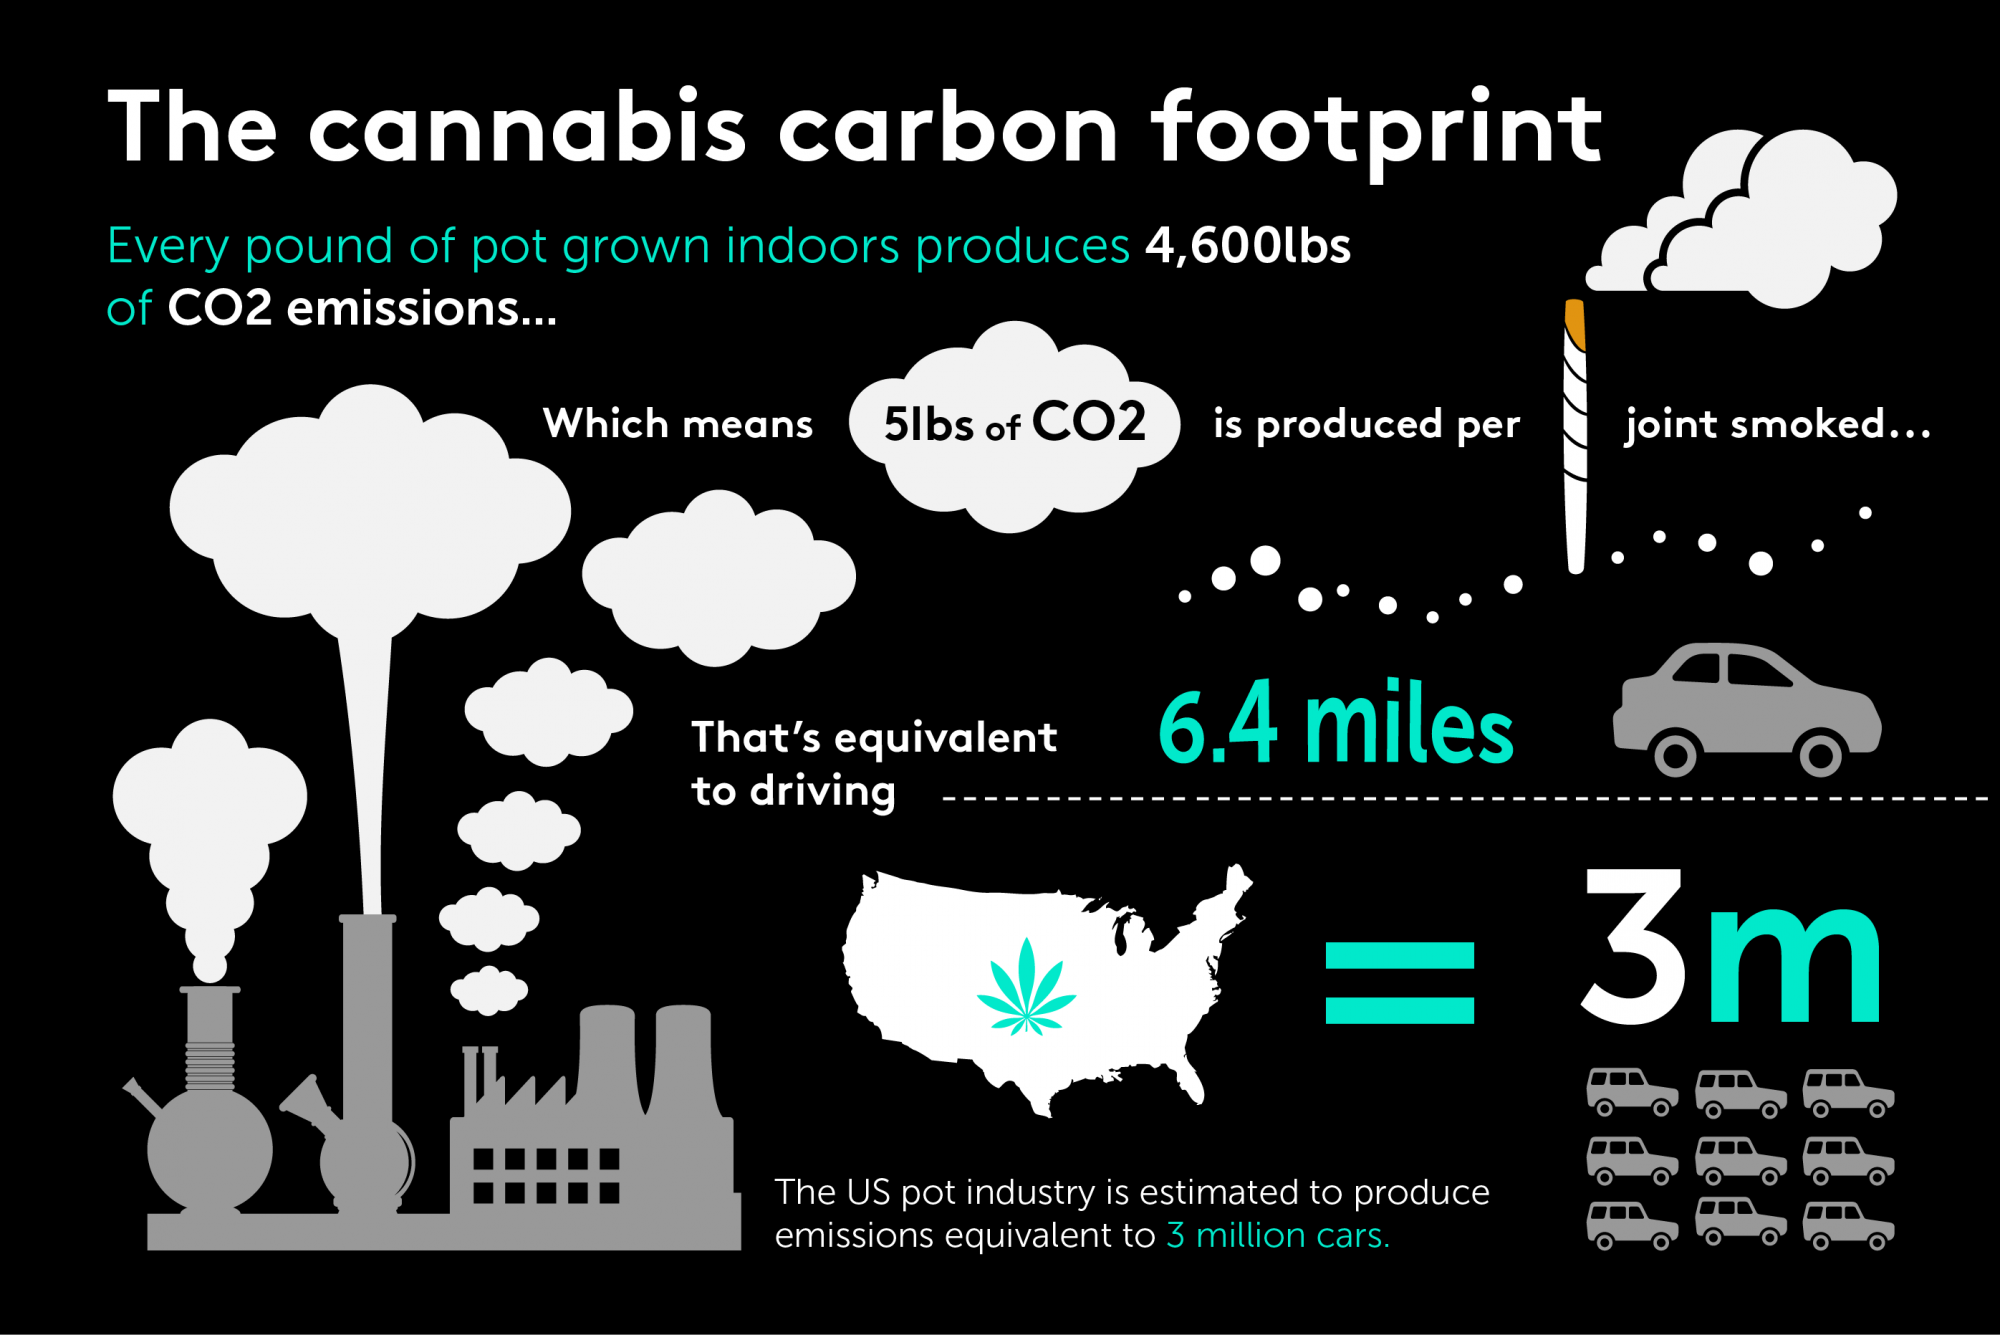 Cannabis-infographic-PANEL-1-3x2-2000x1335.png